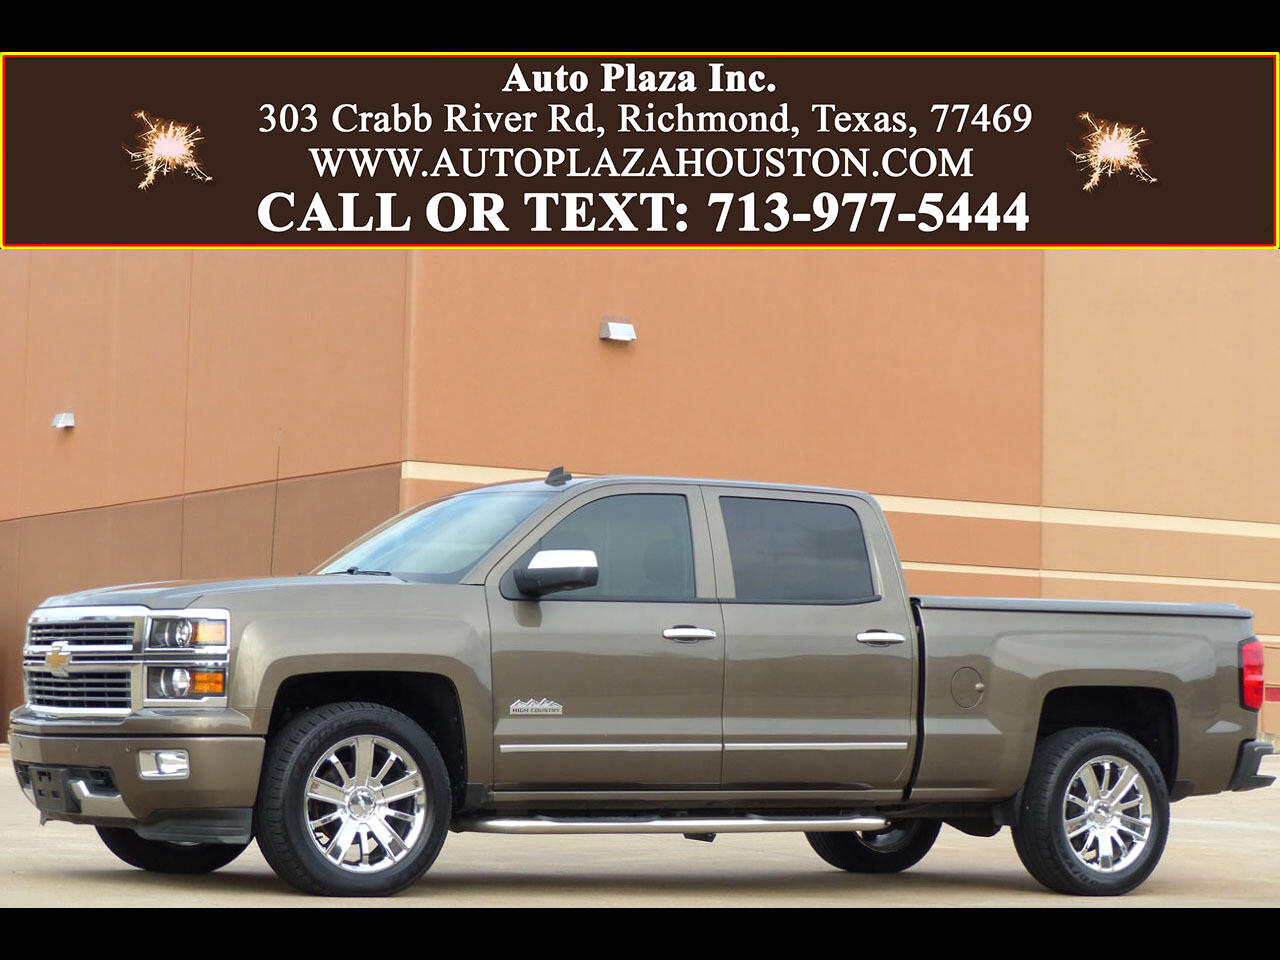 Chevrolet Silverado 1500 High Country Crew Cab 2WD 2014